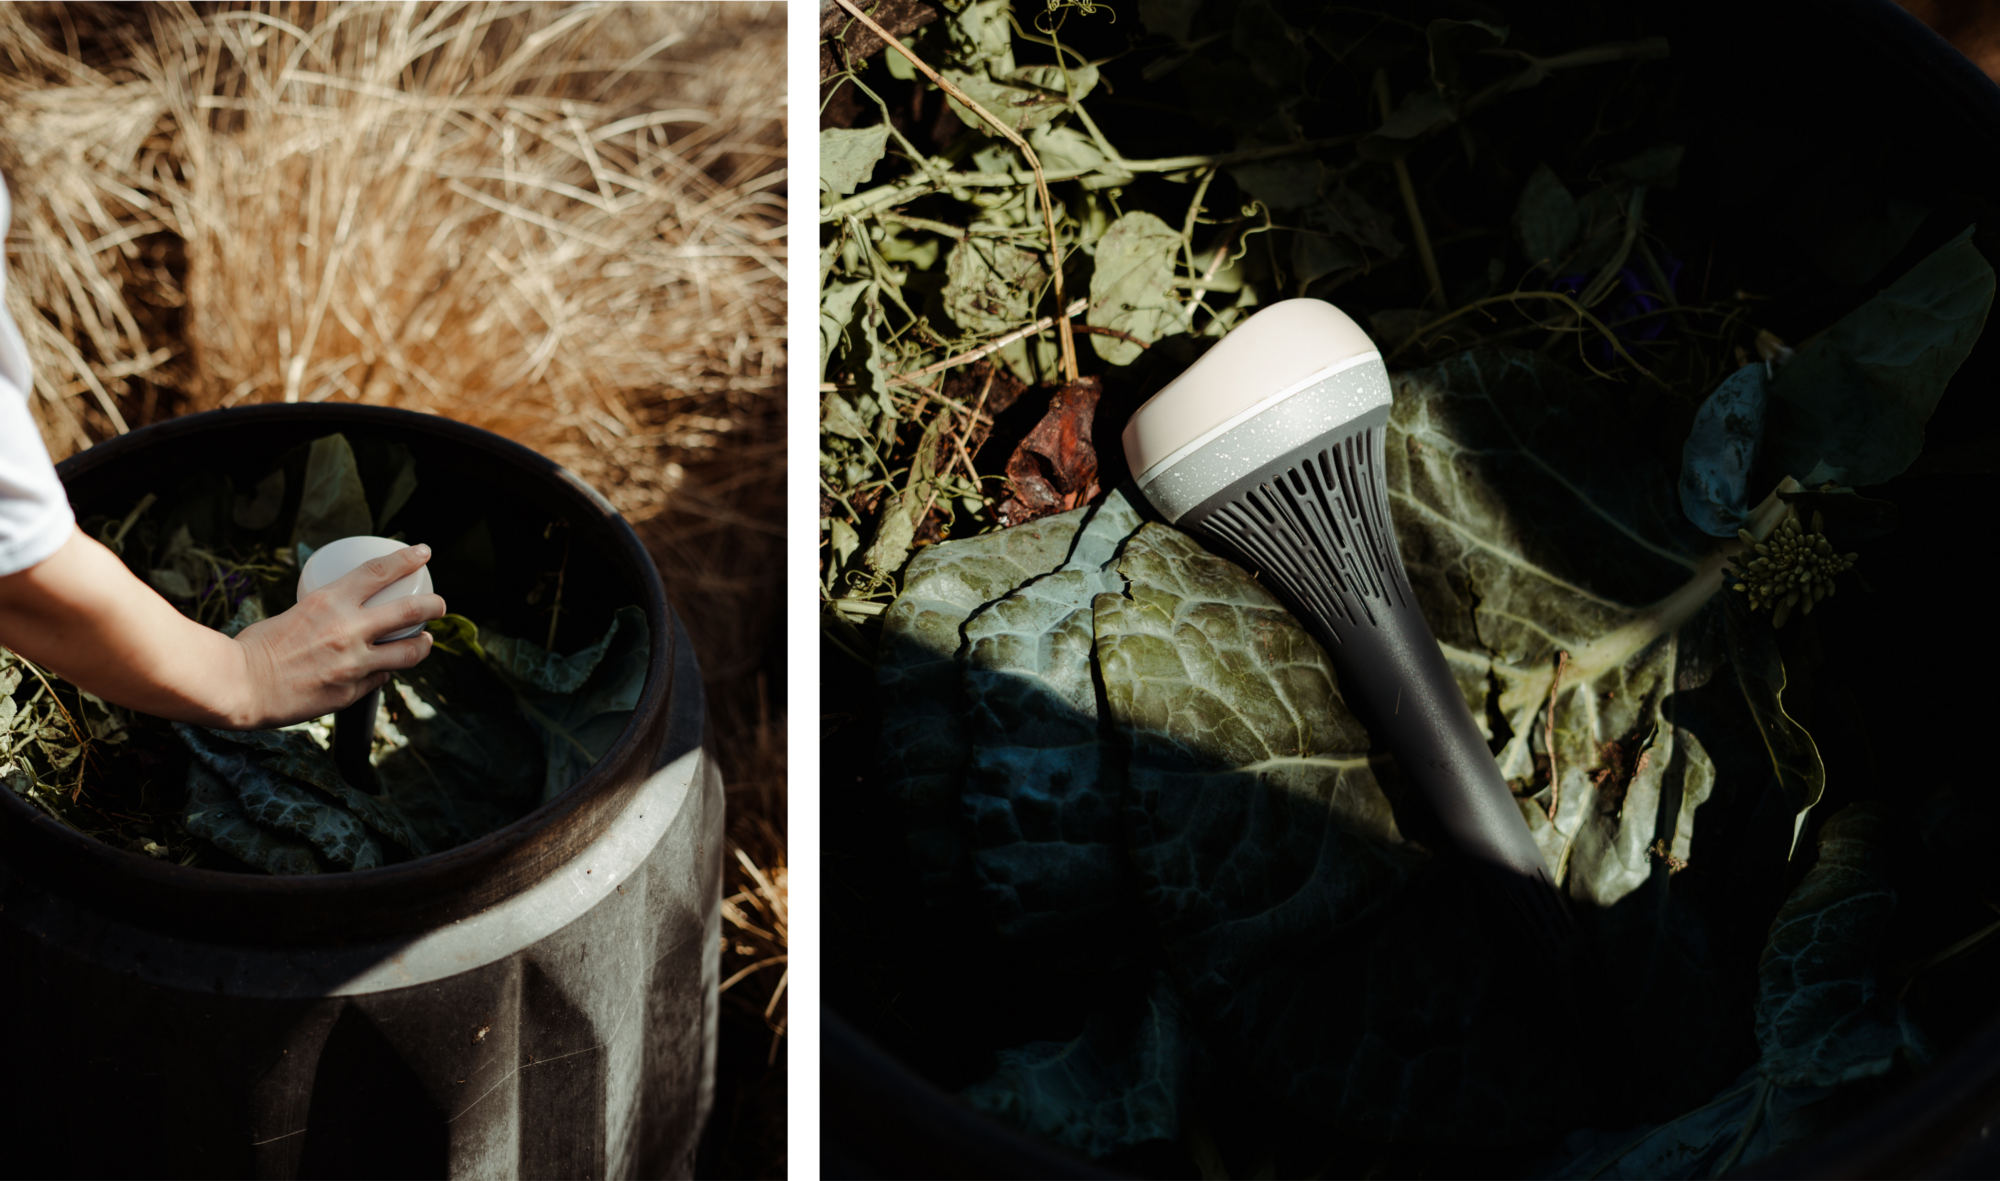 Left image: A hand inserting the monitor into a drum of compost. Right image: The Monty monitor resting on some decomposing vegies.